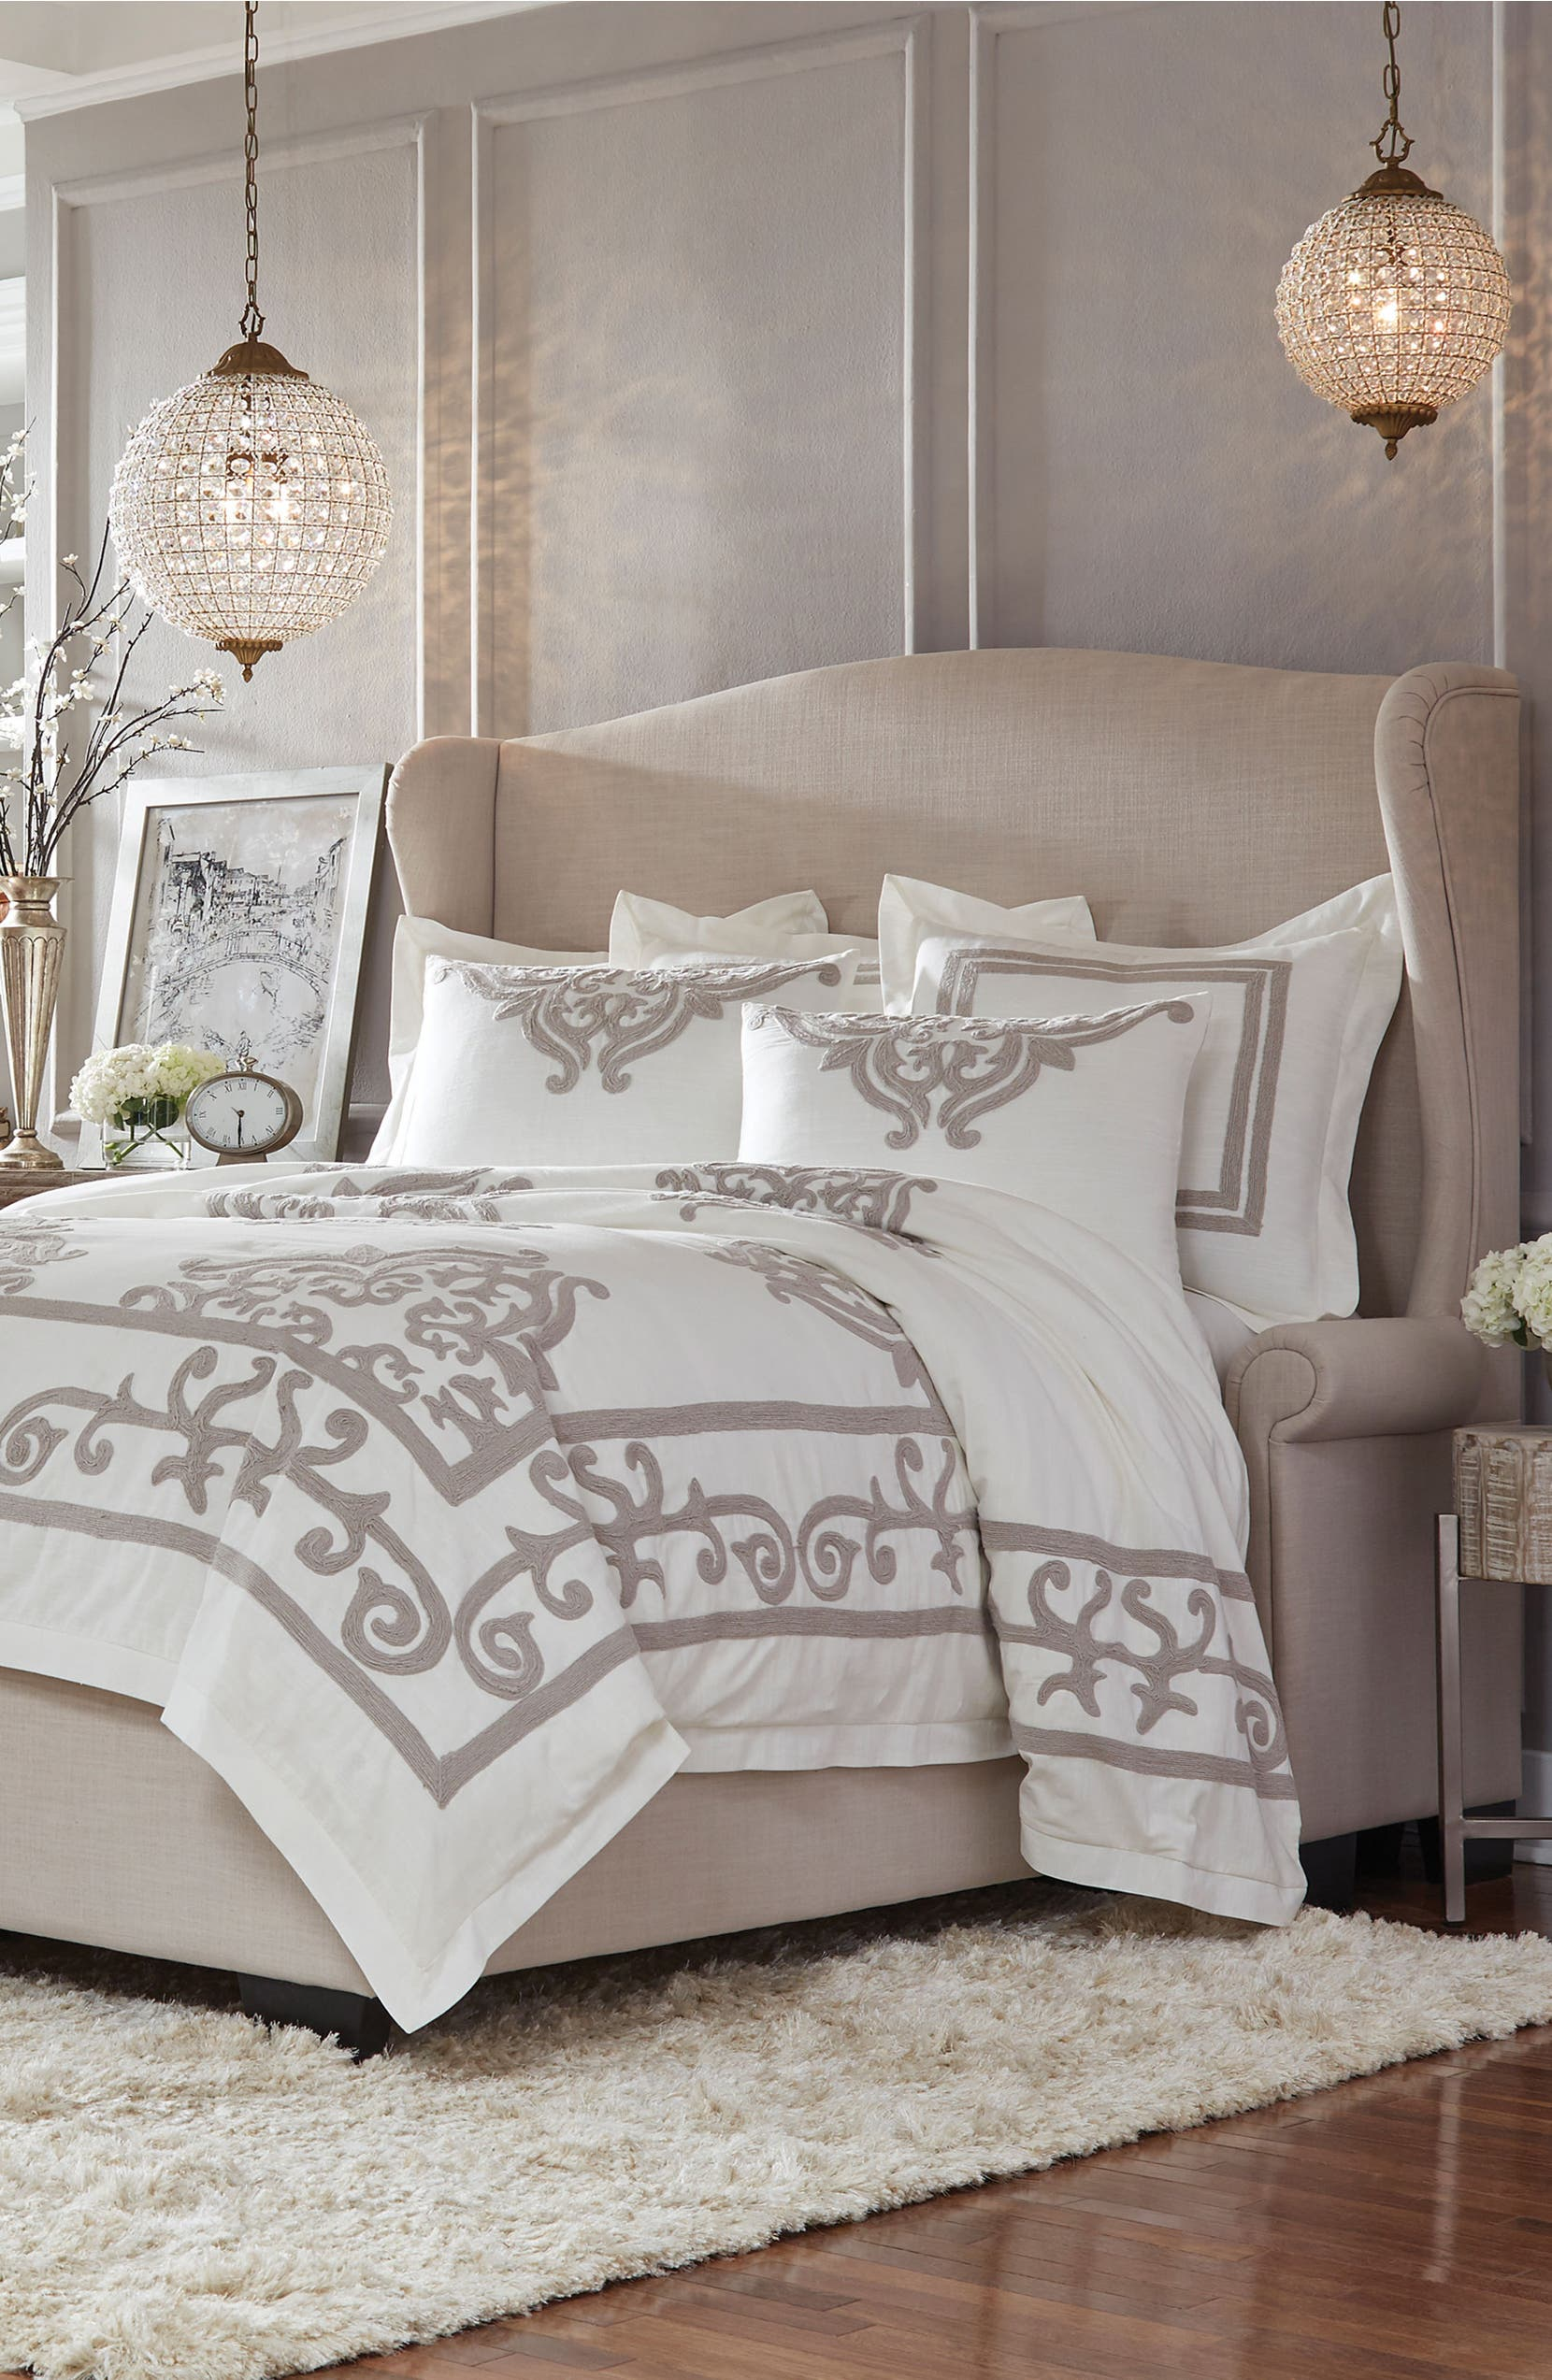 Patrina Embroidered Duvet Cover, IVORY/ TAUPE, christine kohut interiors, designninja, bedding, winter white out, sale, nordstrom